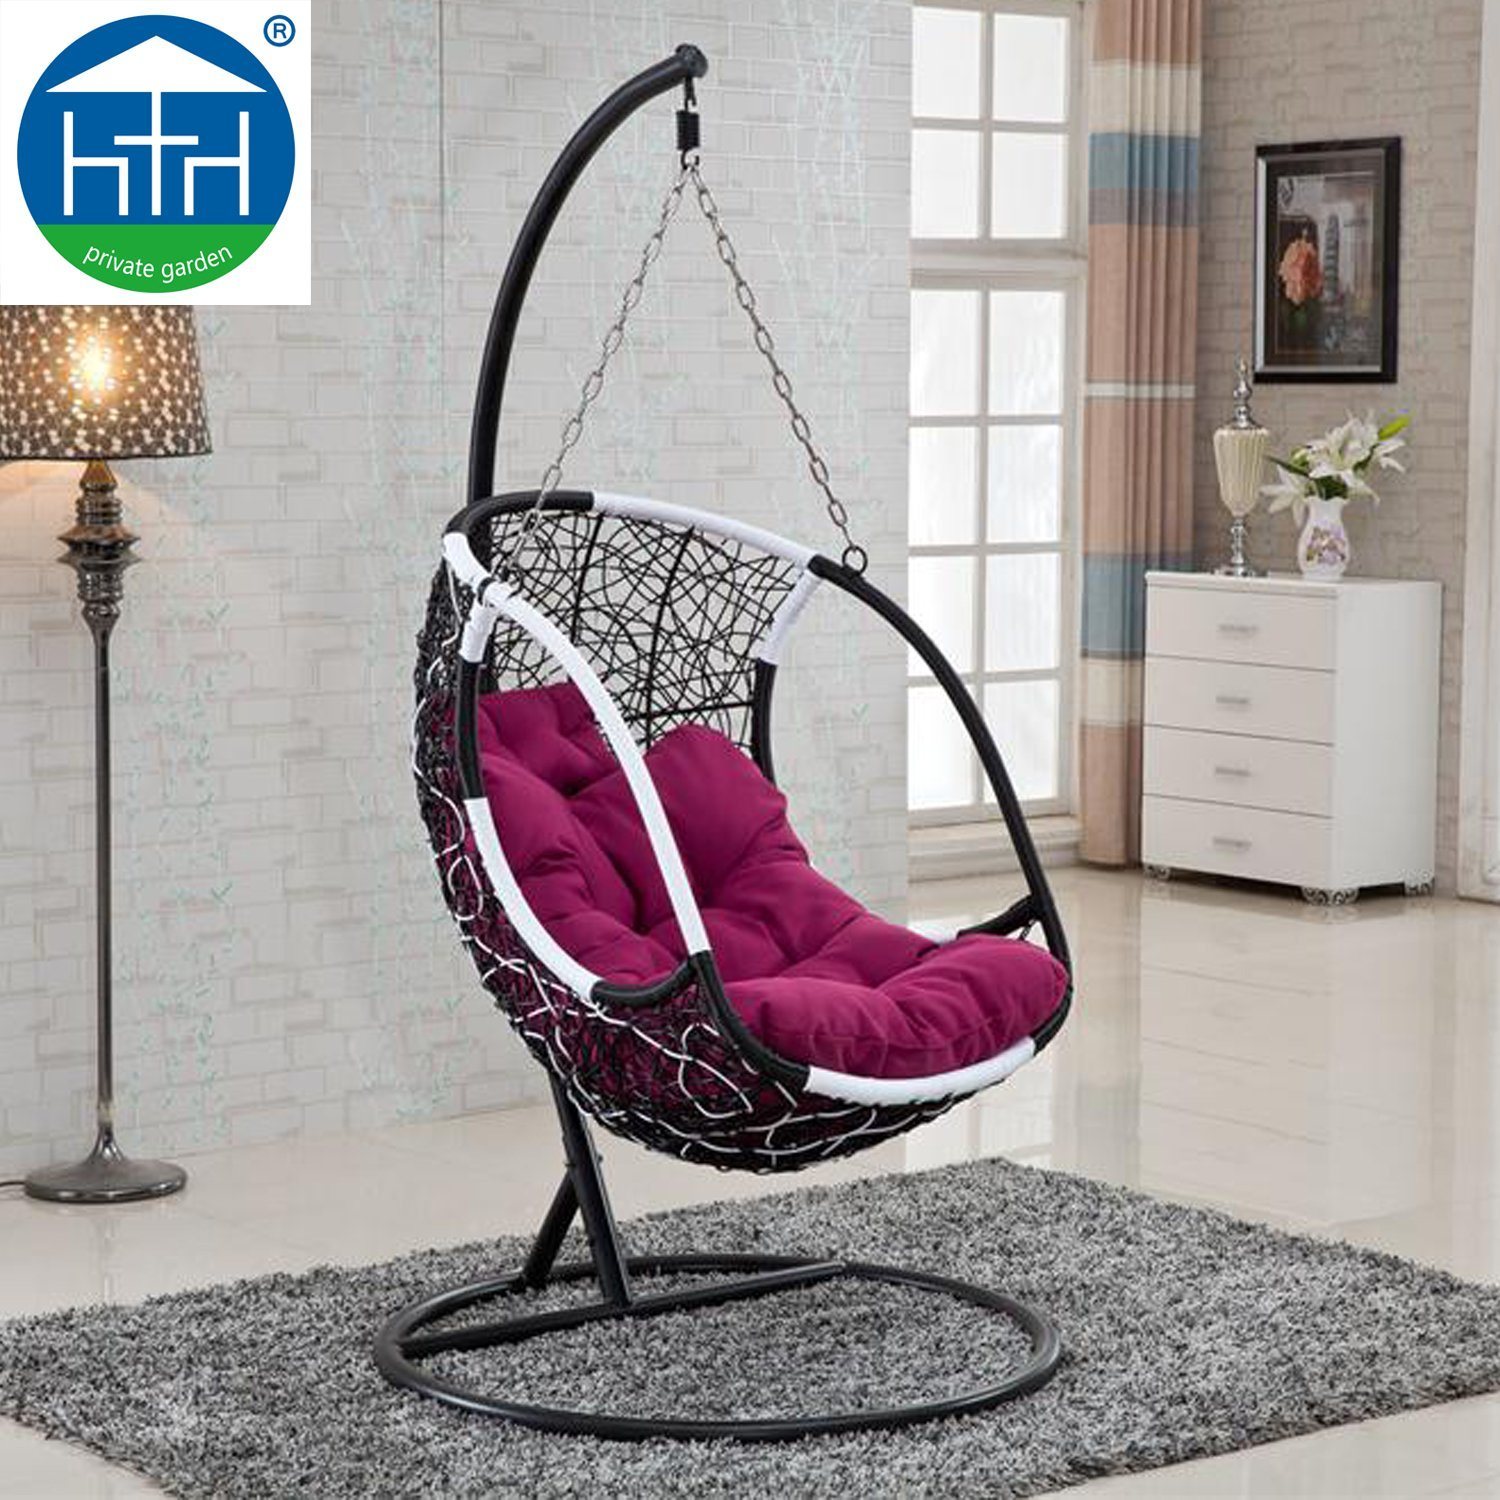 Swinging Chair Hot Item Cheap Outdoor Garden Furniture Swinging Chair With Cushion